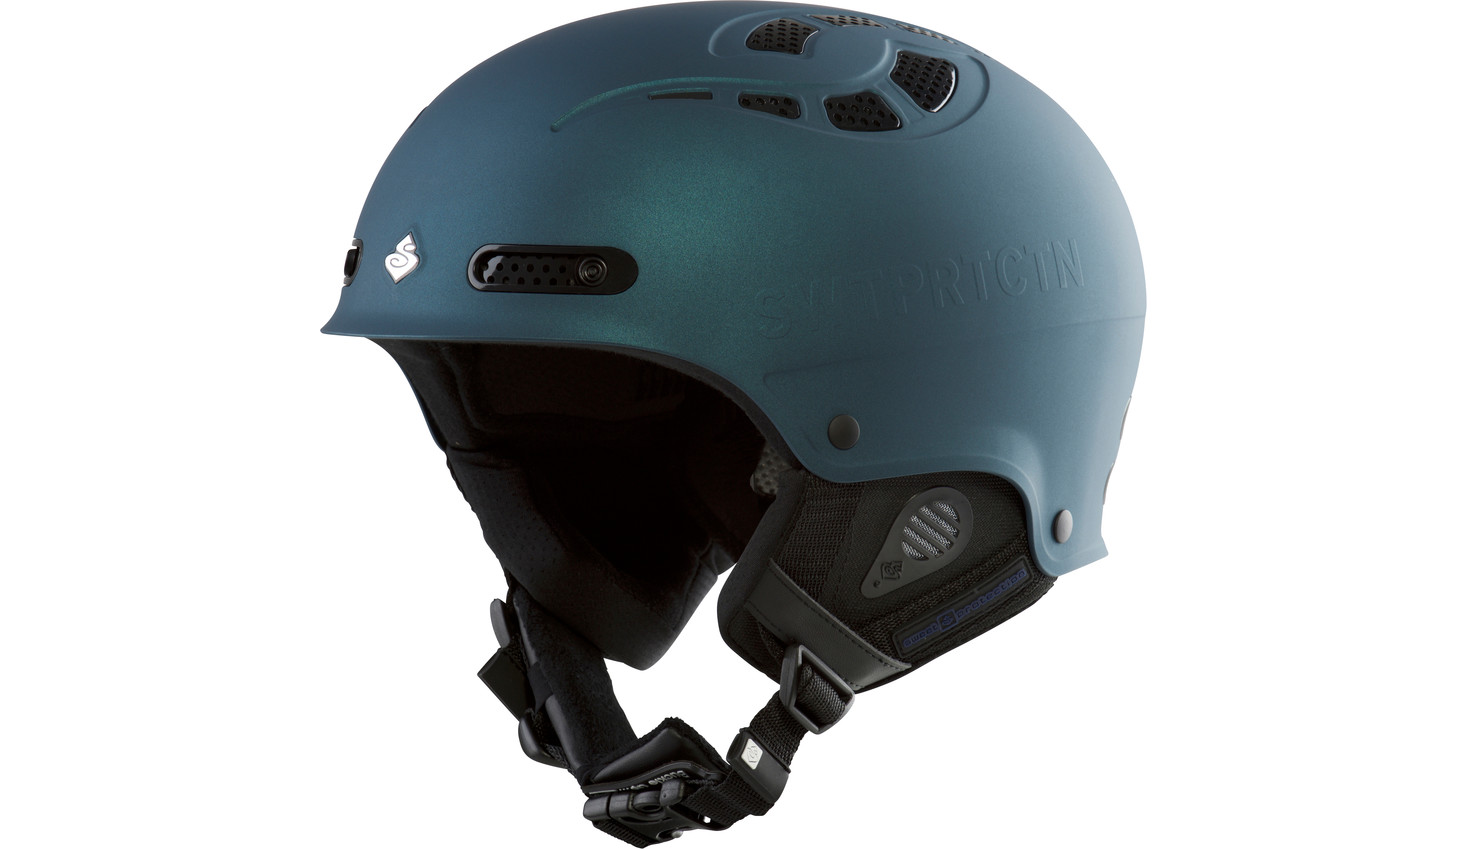 Sweet_Protection_Igniter_Helmet_Matte_Navy_Blue_Metallic[1470x849].jpg